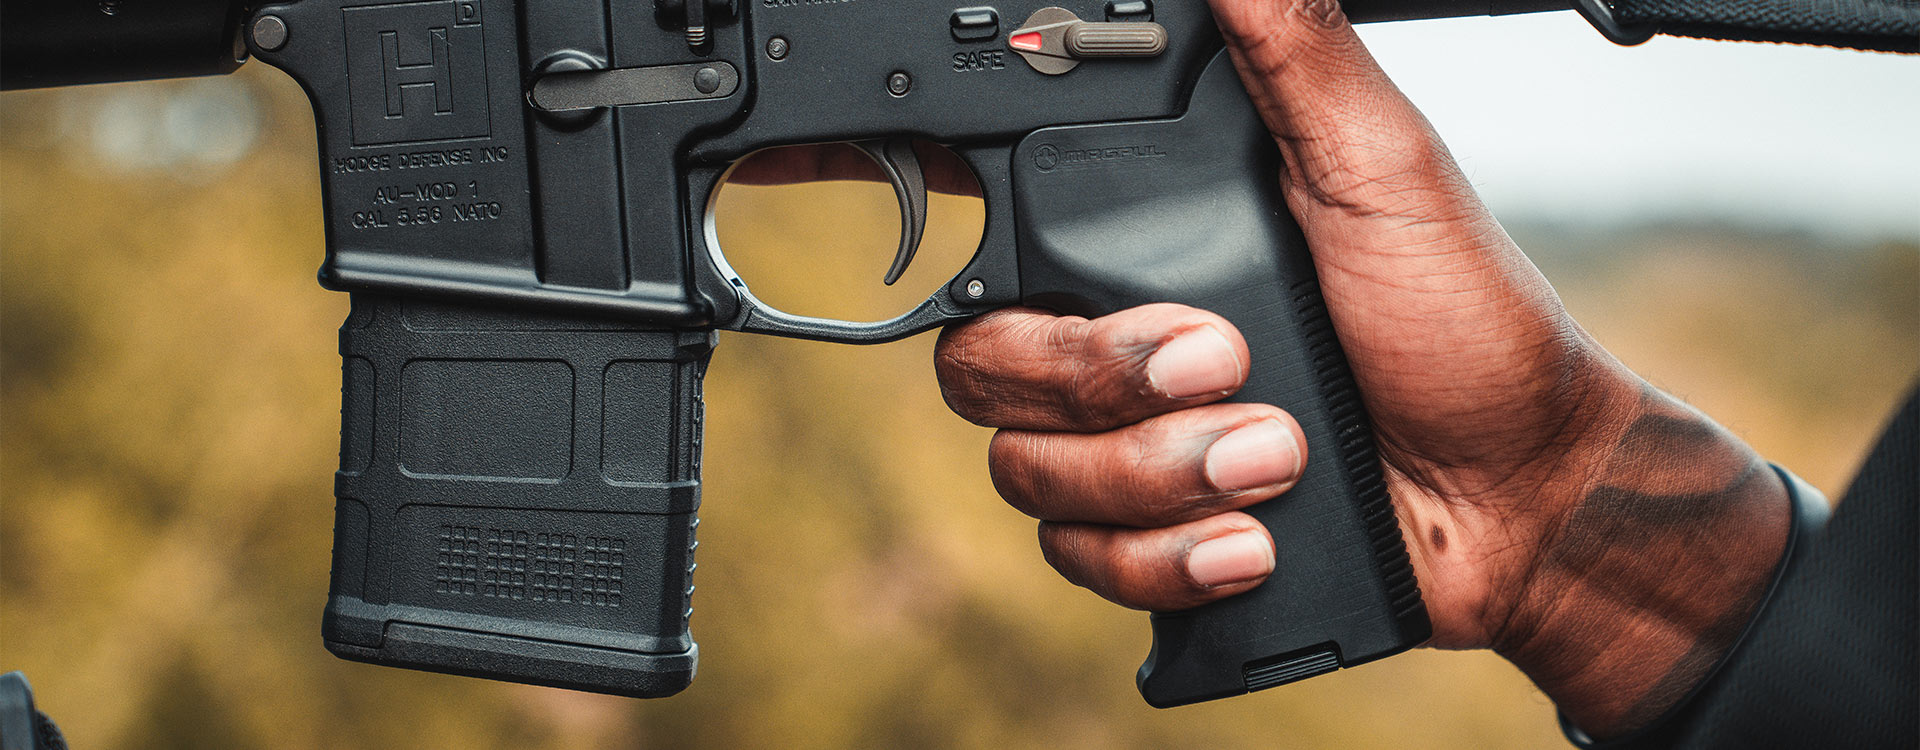 Closeup side view of Magpul MOE K2-XL in hand on gun showing hand placement with the more vertical grip angle